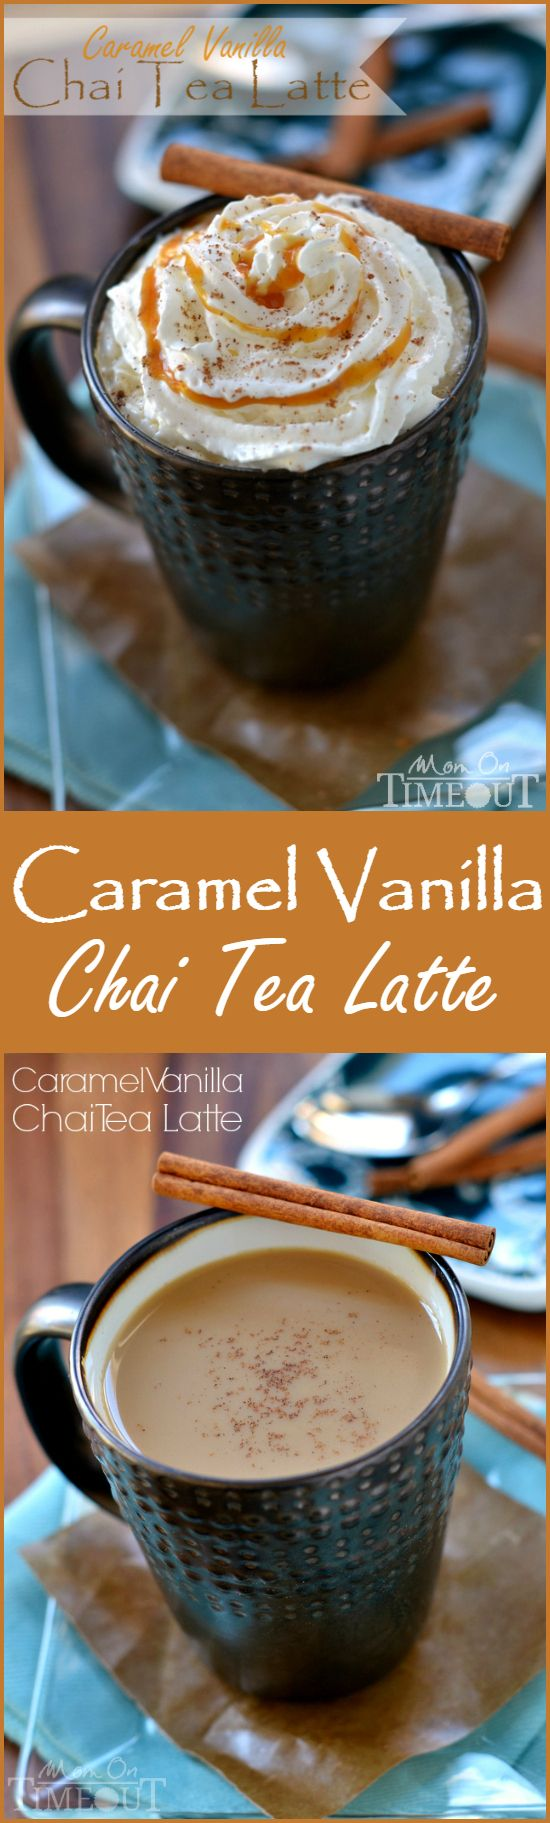 Caramel Vanilla Chai Tea Latte - One of my favorite morning treats - perfect for those days when I have a few extra minutes! To make vegan use almond/soy milk!